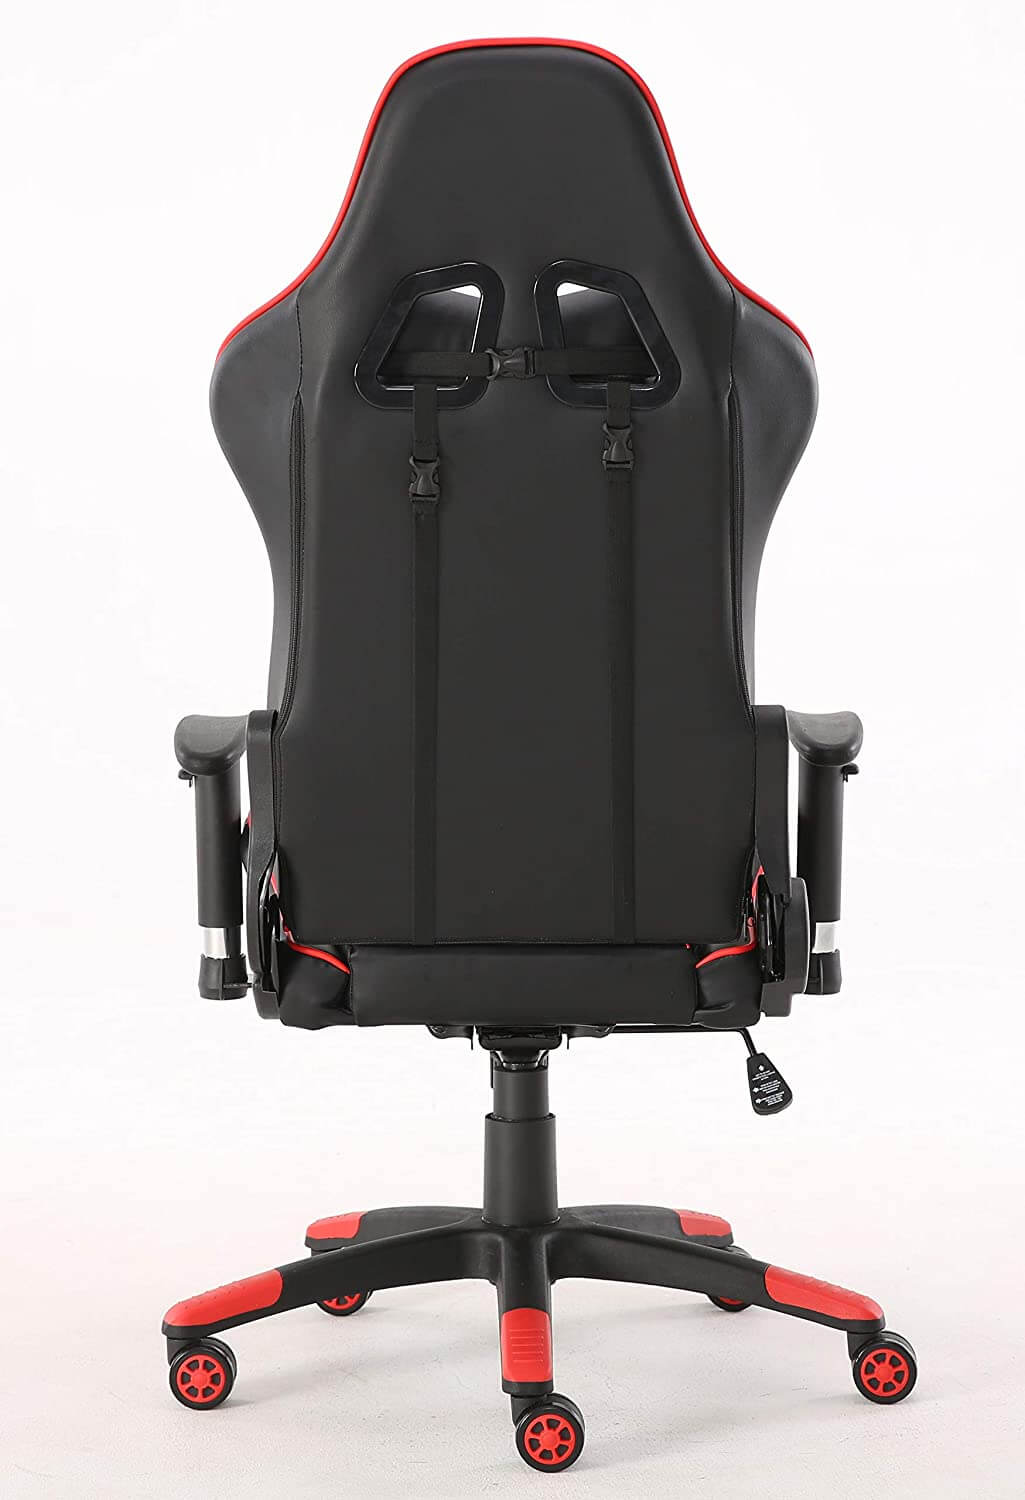 requena budget gaming chair for the ultimate gaming experience